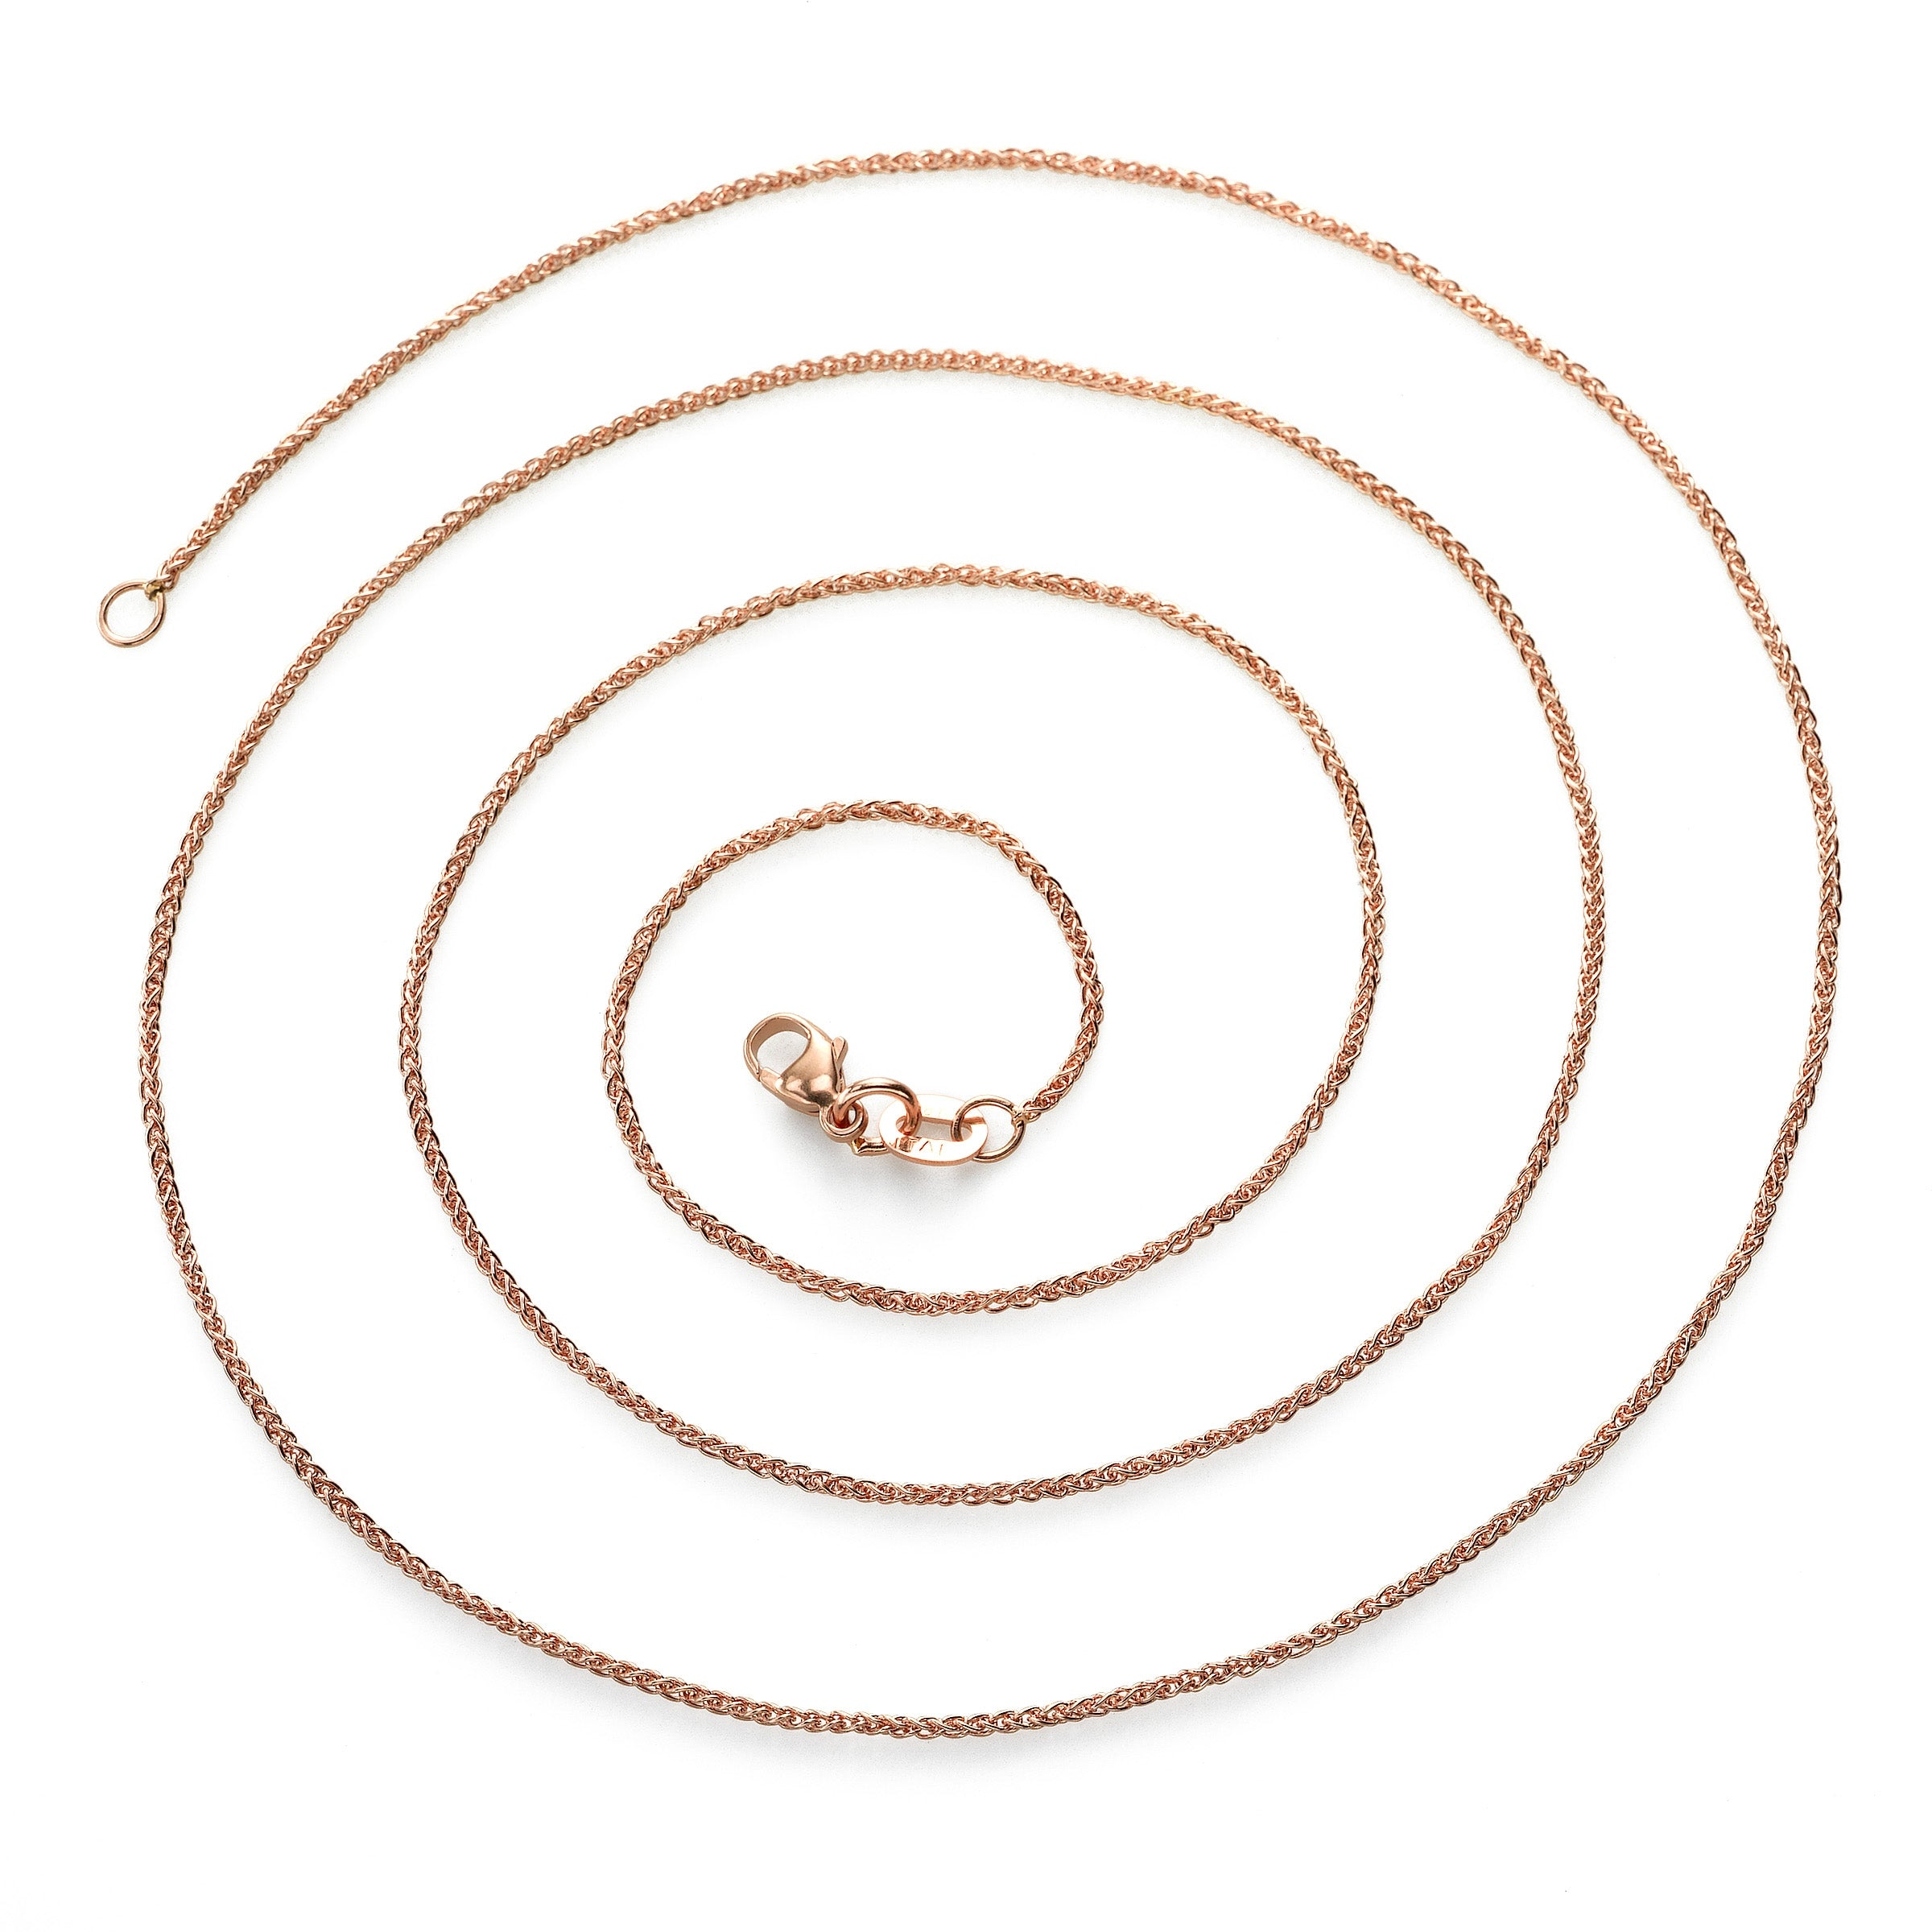 Cable Chain, 16 Inches, 14K Rose Gold